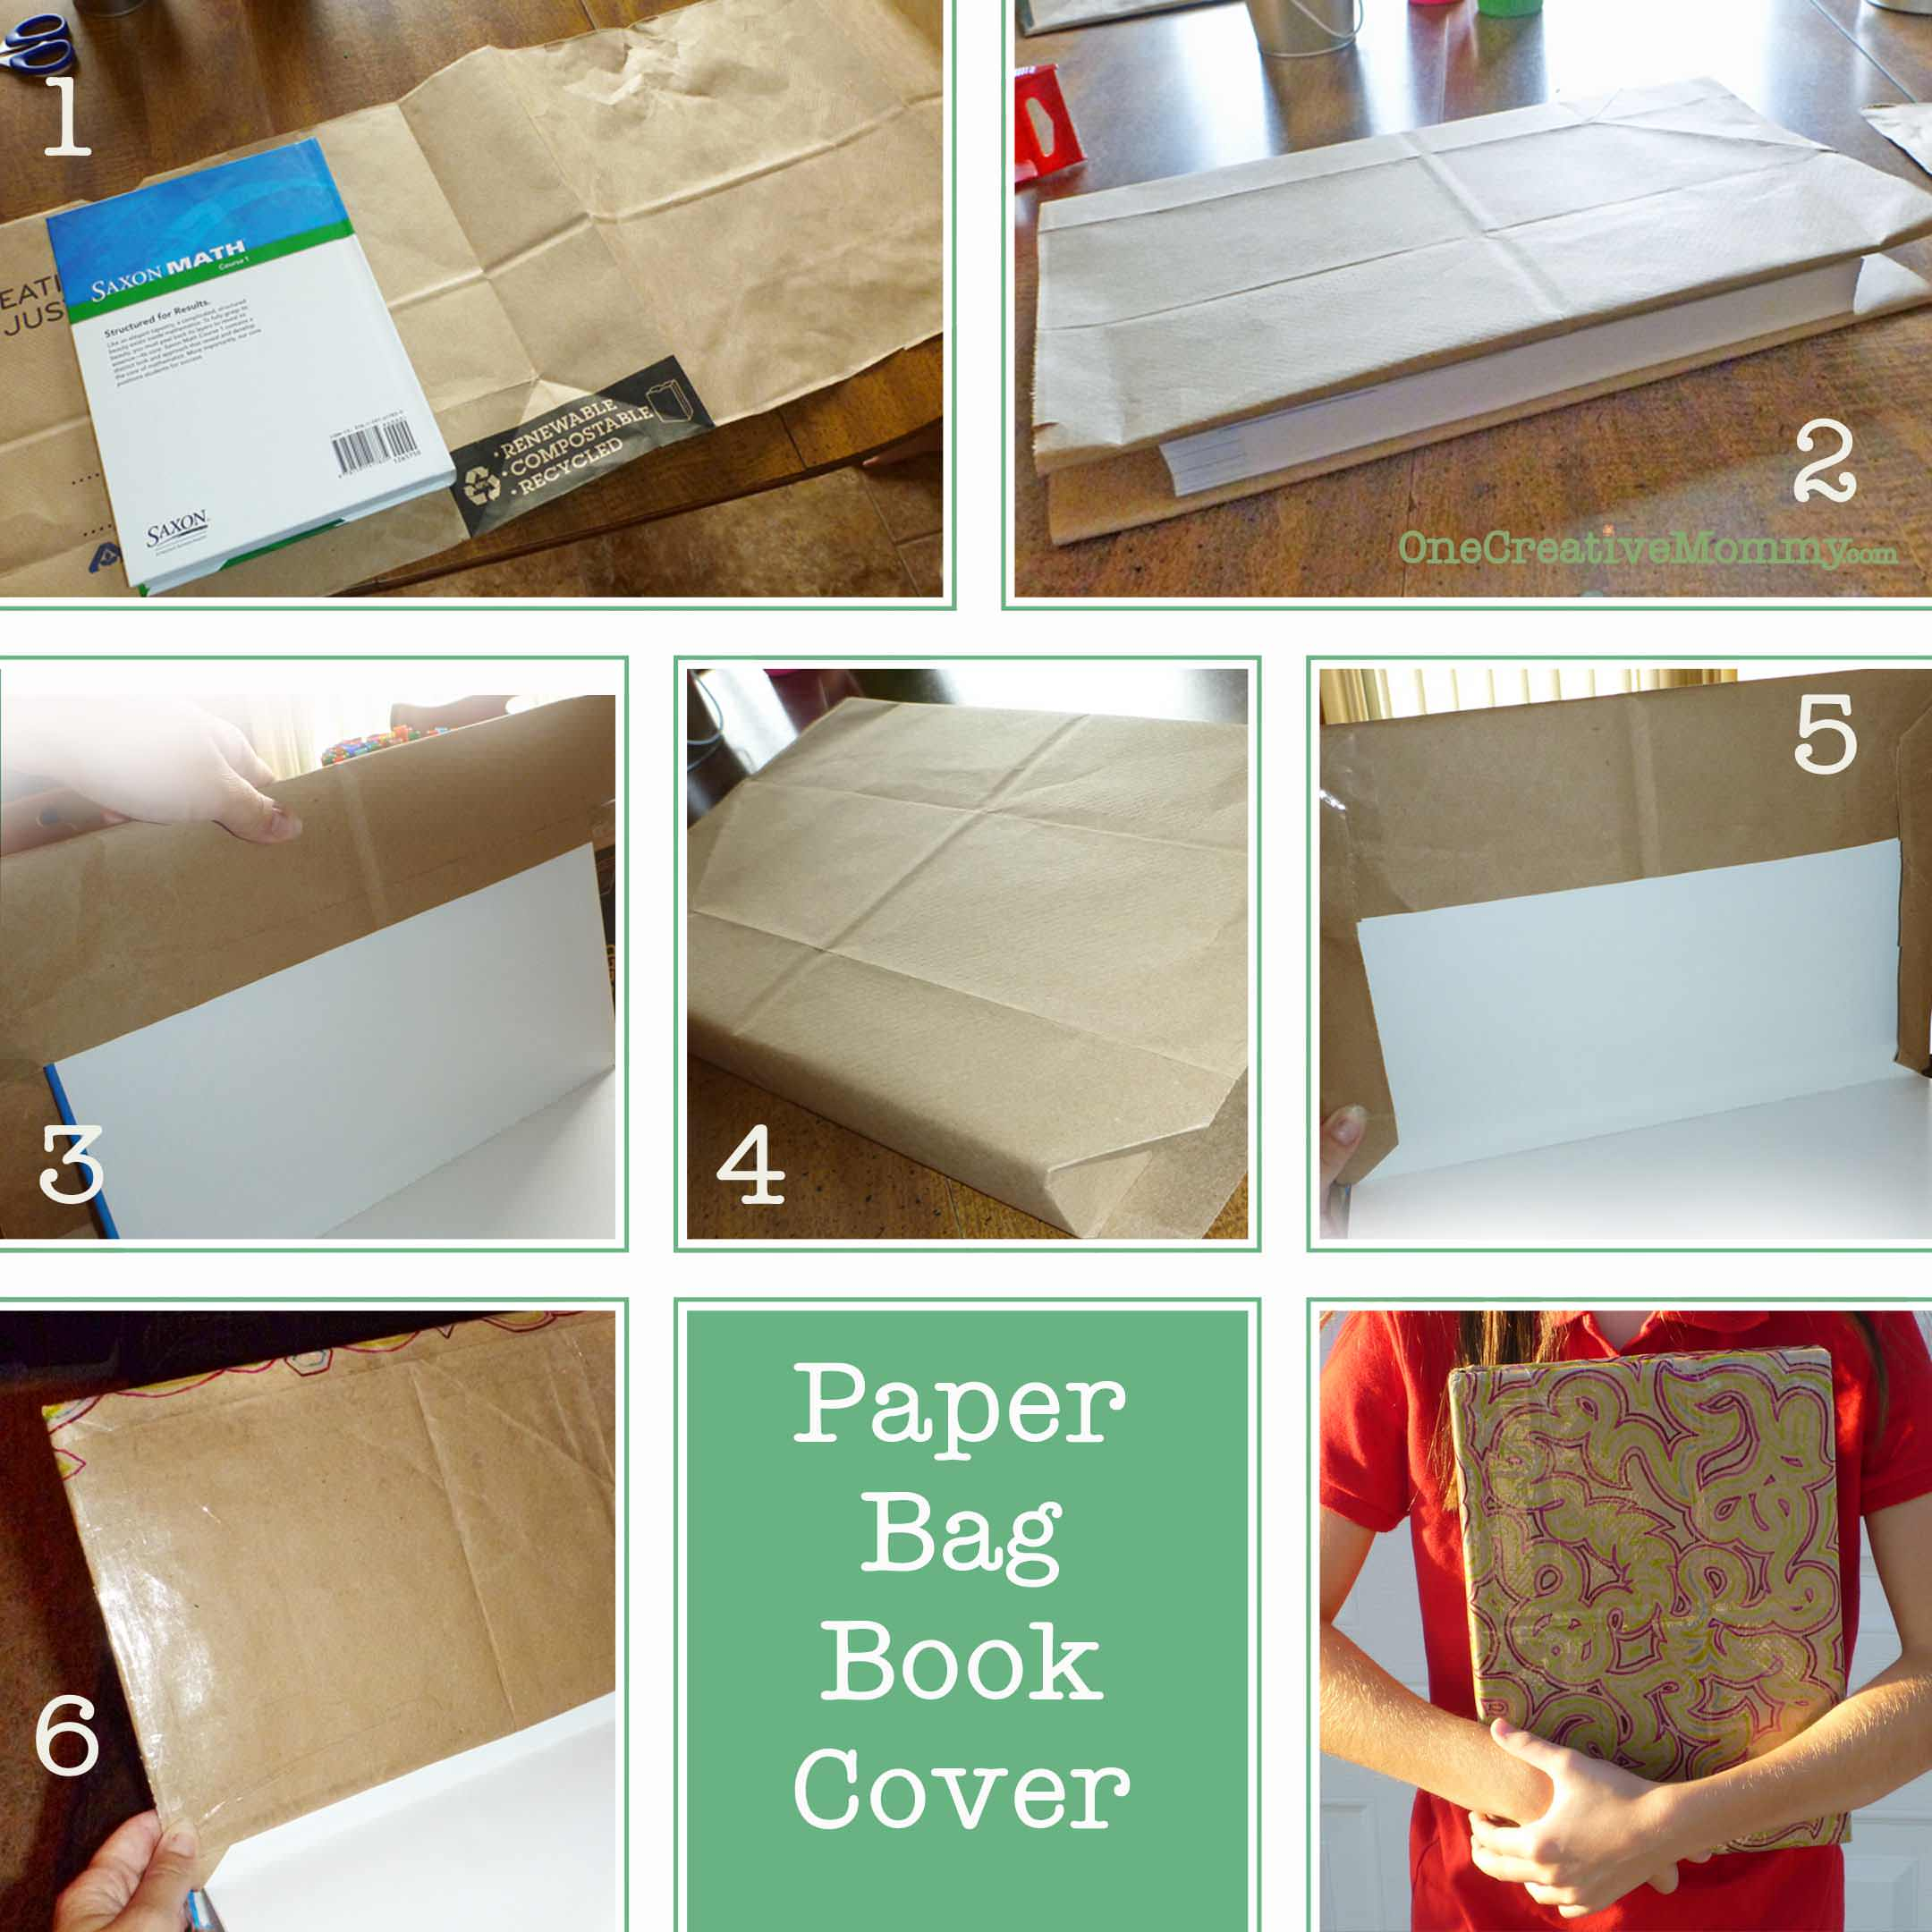 How To Make Book Cover Collage : Diy paper book cover onecreativemommy